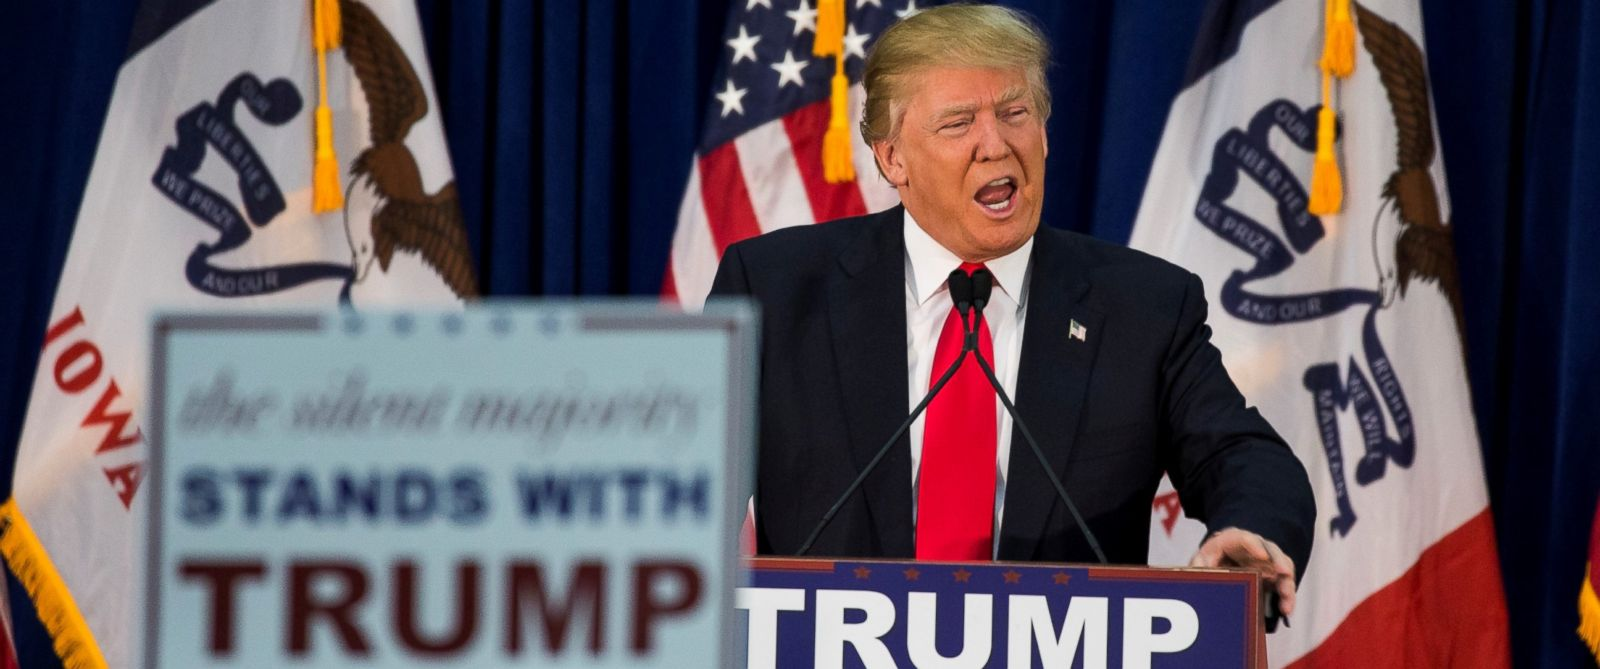 PHOTO: Republican presidential candidate Donald Trump speaks during a campaign rally in Waterloo, Iowa, Feb. 1, 2016.